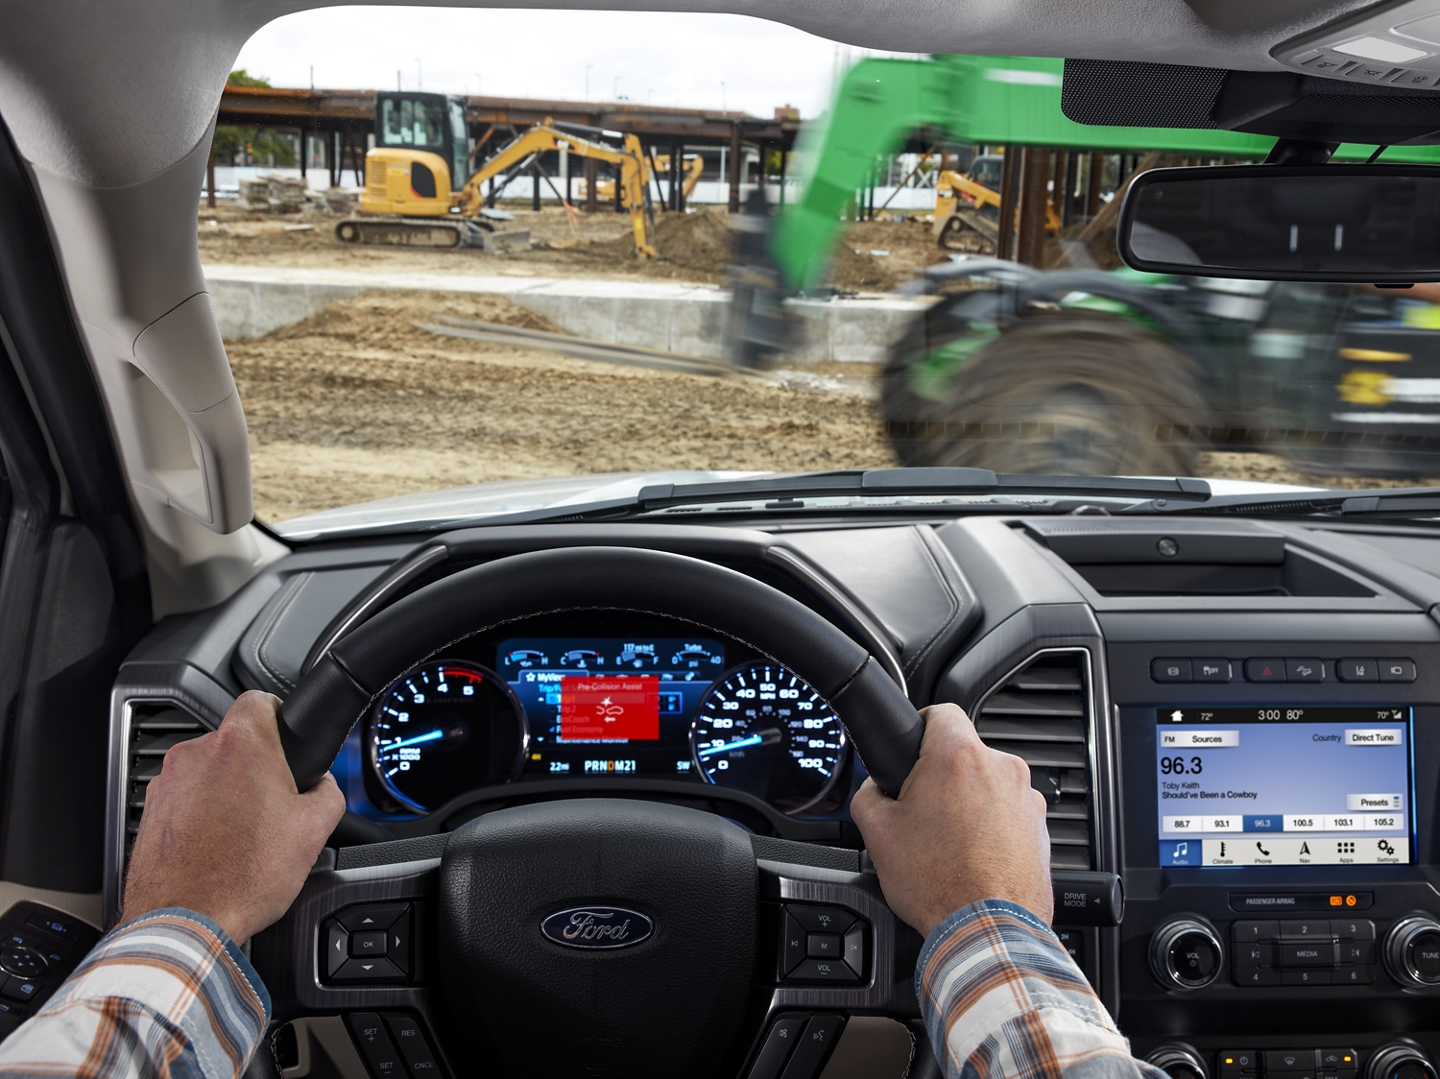 The view from inside a 2020 Super Duty on a construction site as the emergency braking system is engaged